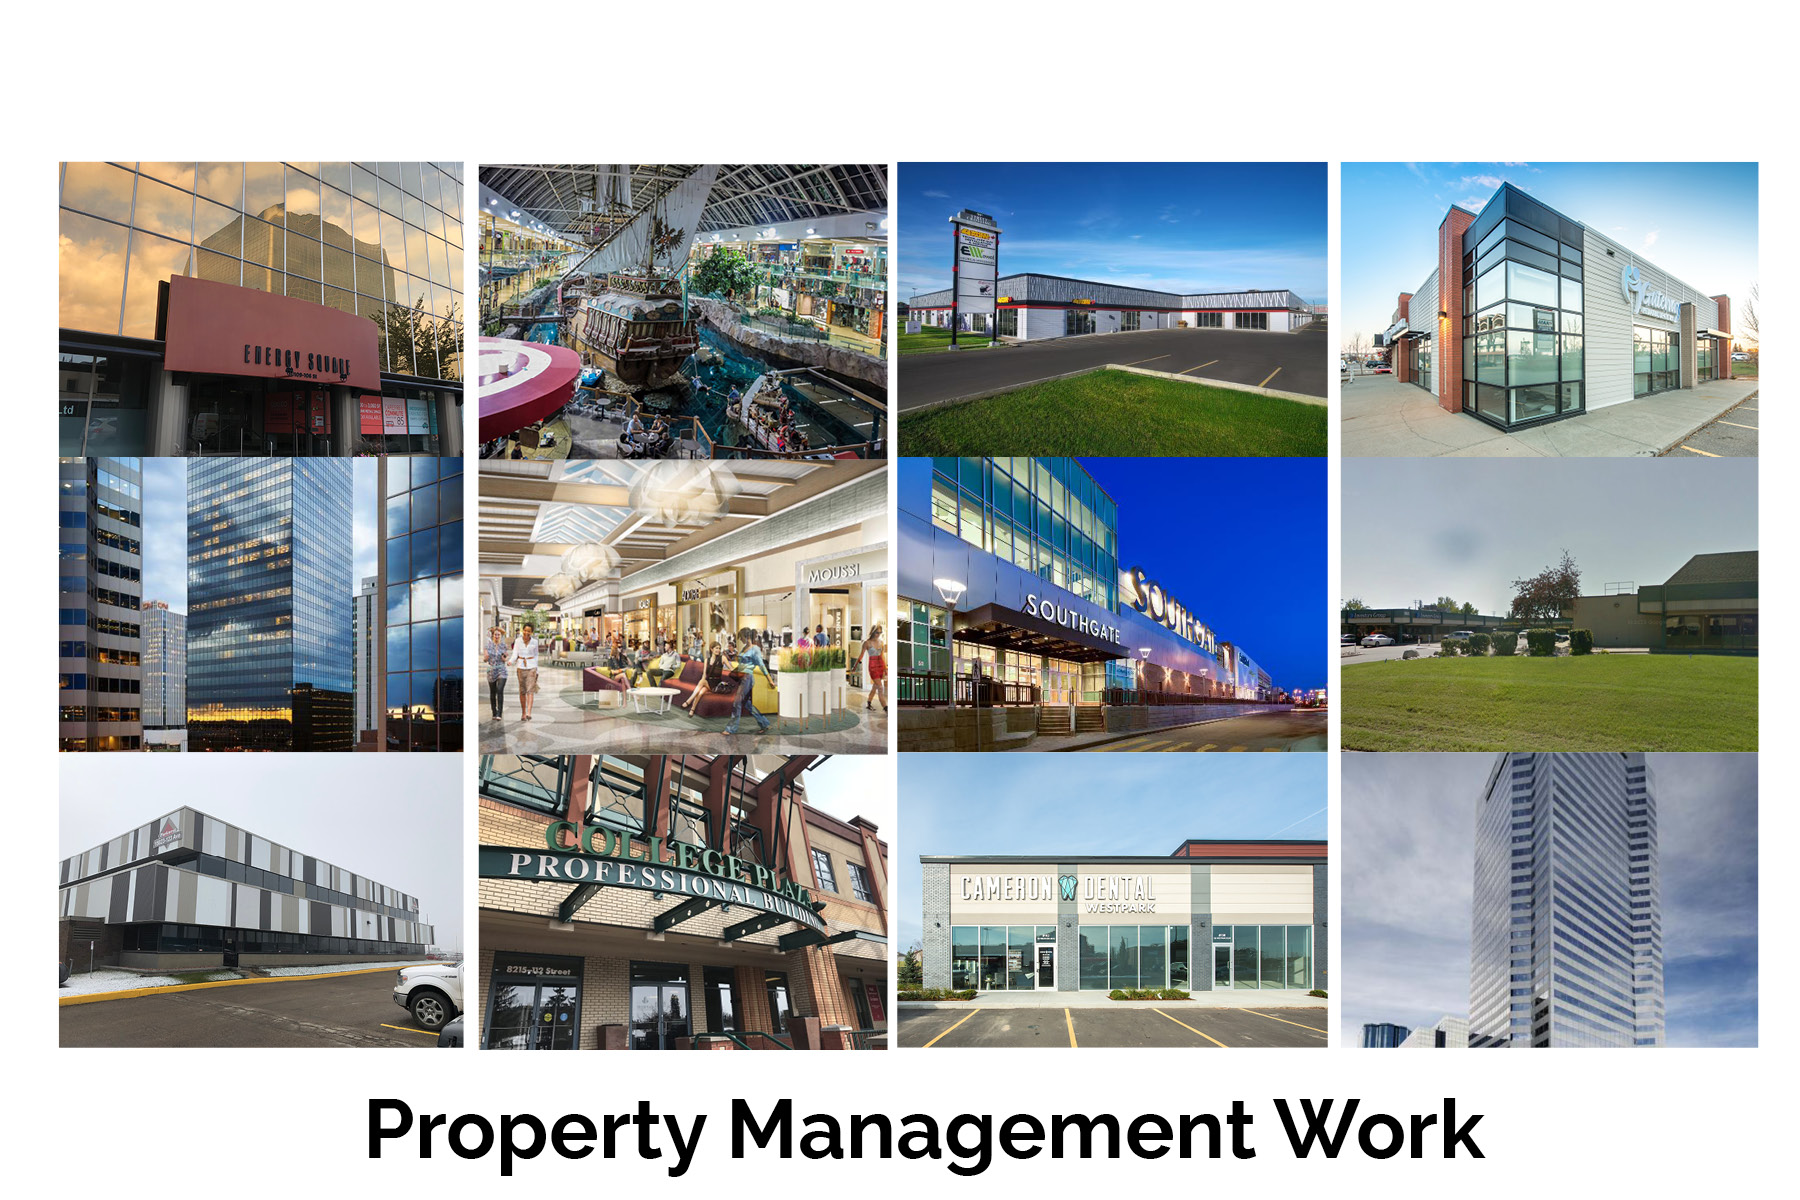 Property Management Work